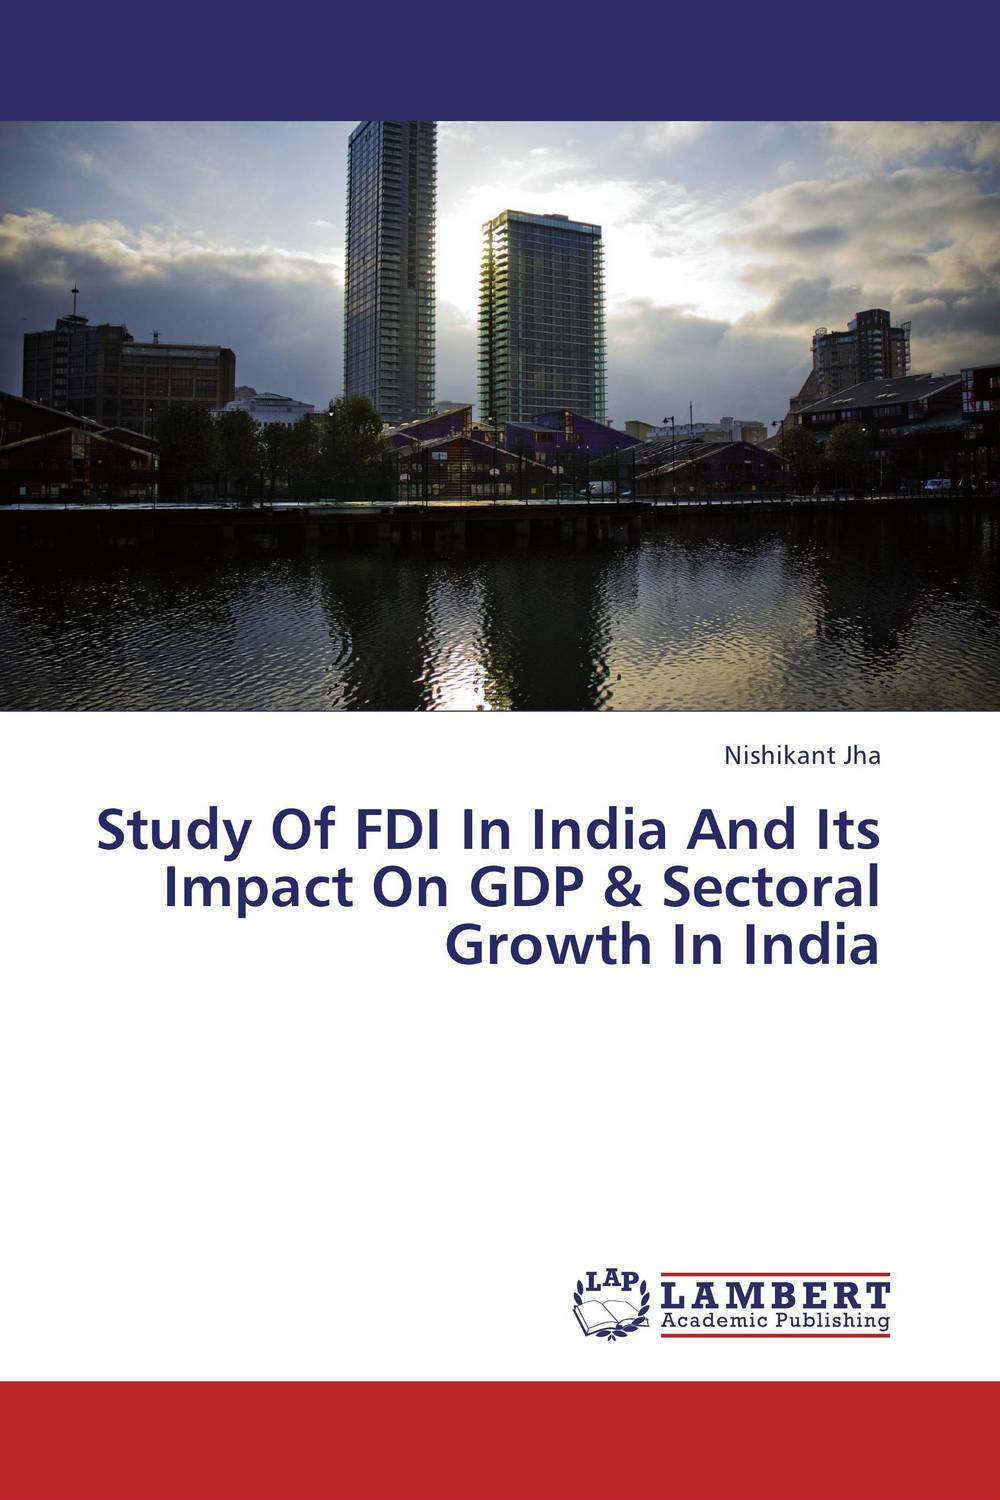 Study Of FDI In India And Its Impact On GDP & Sectoral Growth In India offiong solomon the impact of government policy on the informal sector in nigeria